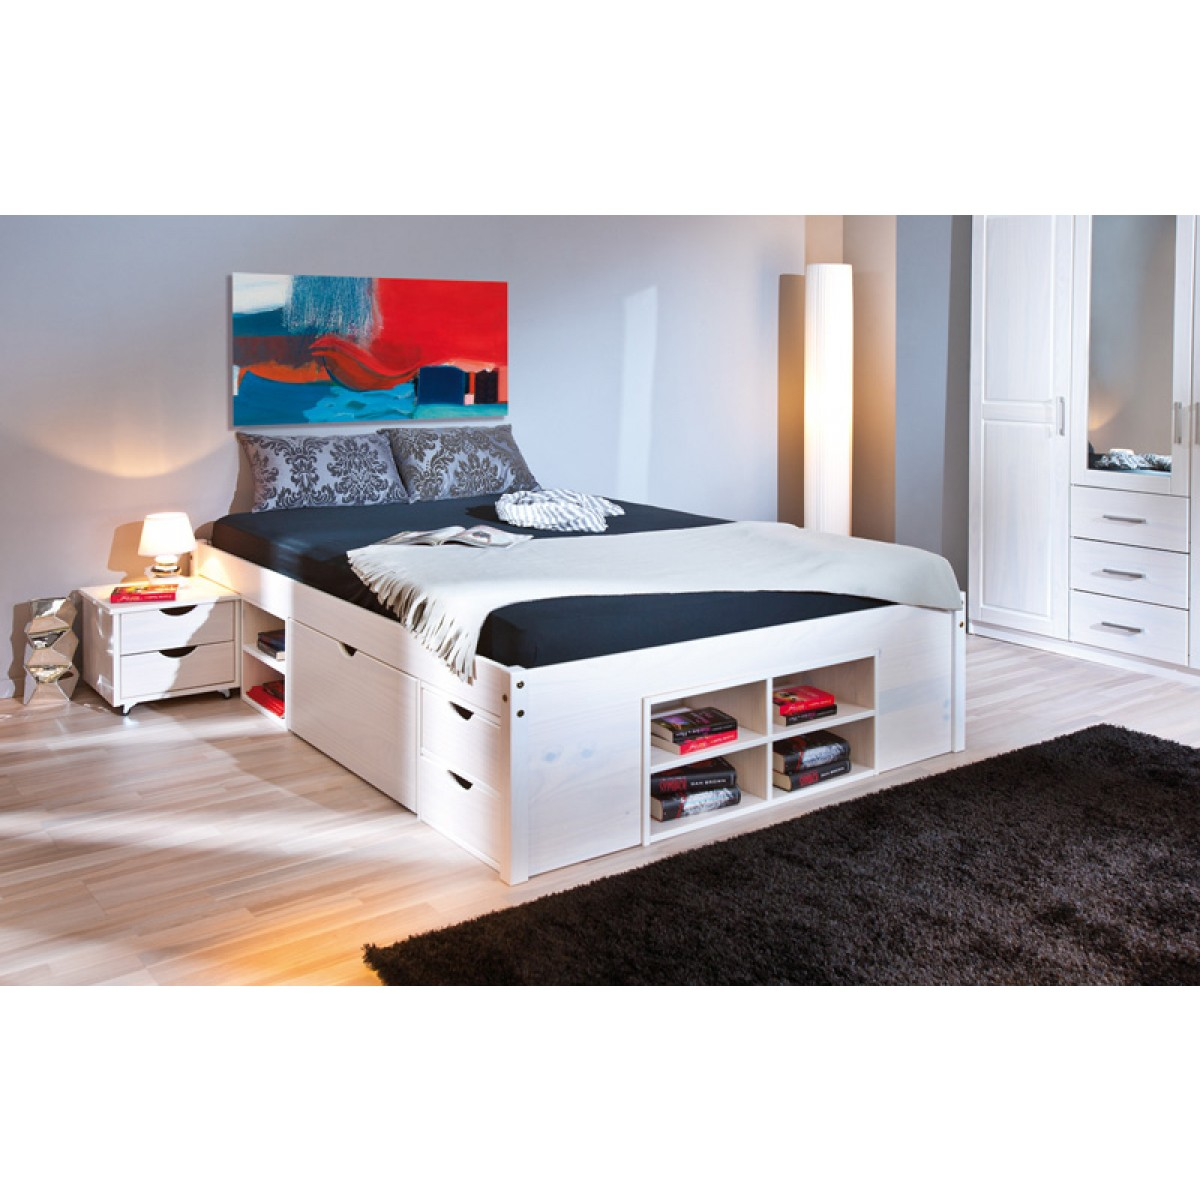 https://www.collyshop.it/media/catalog/product/cache/1/image/1200x1200/9df78eab33525d08d6e5fb8d27136e95/l/e/letto-matrimoniale-in-legno-massello-bianco-con-vani-cassetti-e-comodino-due-cassetti-incluso_1.jpg